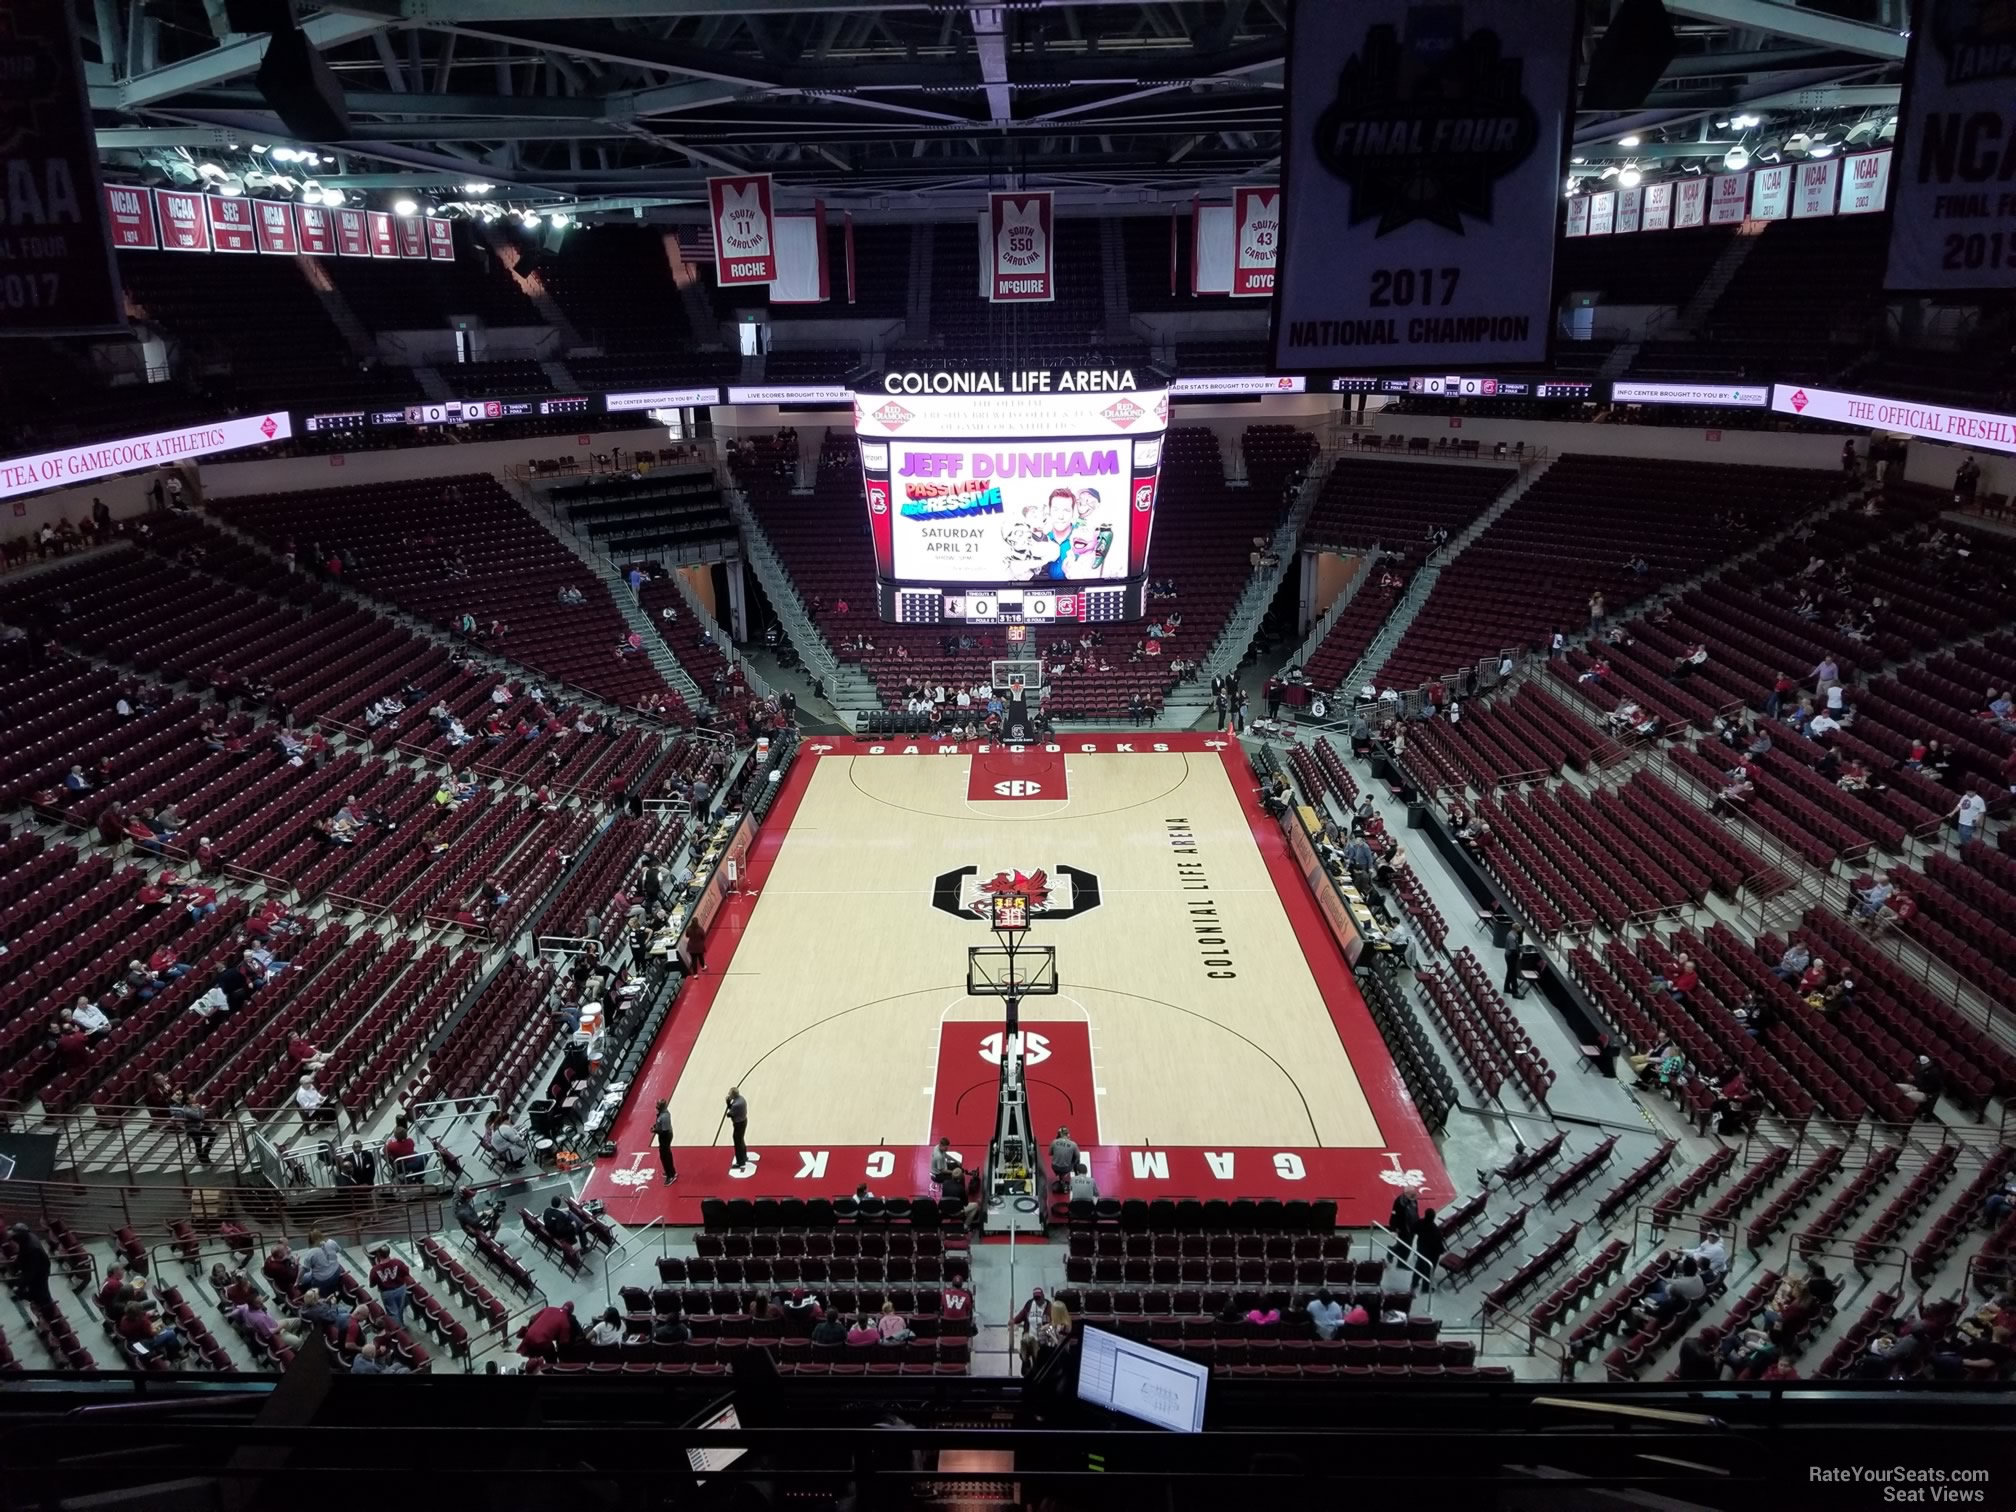 Colonial Life Arena Section 201 South